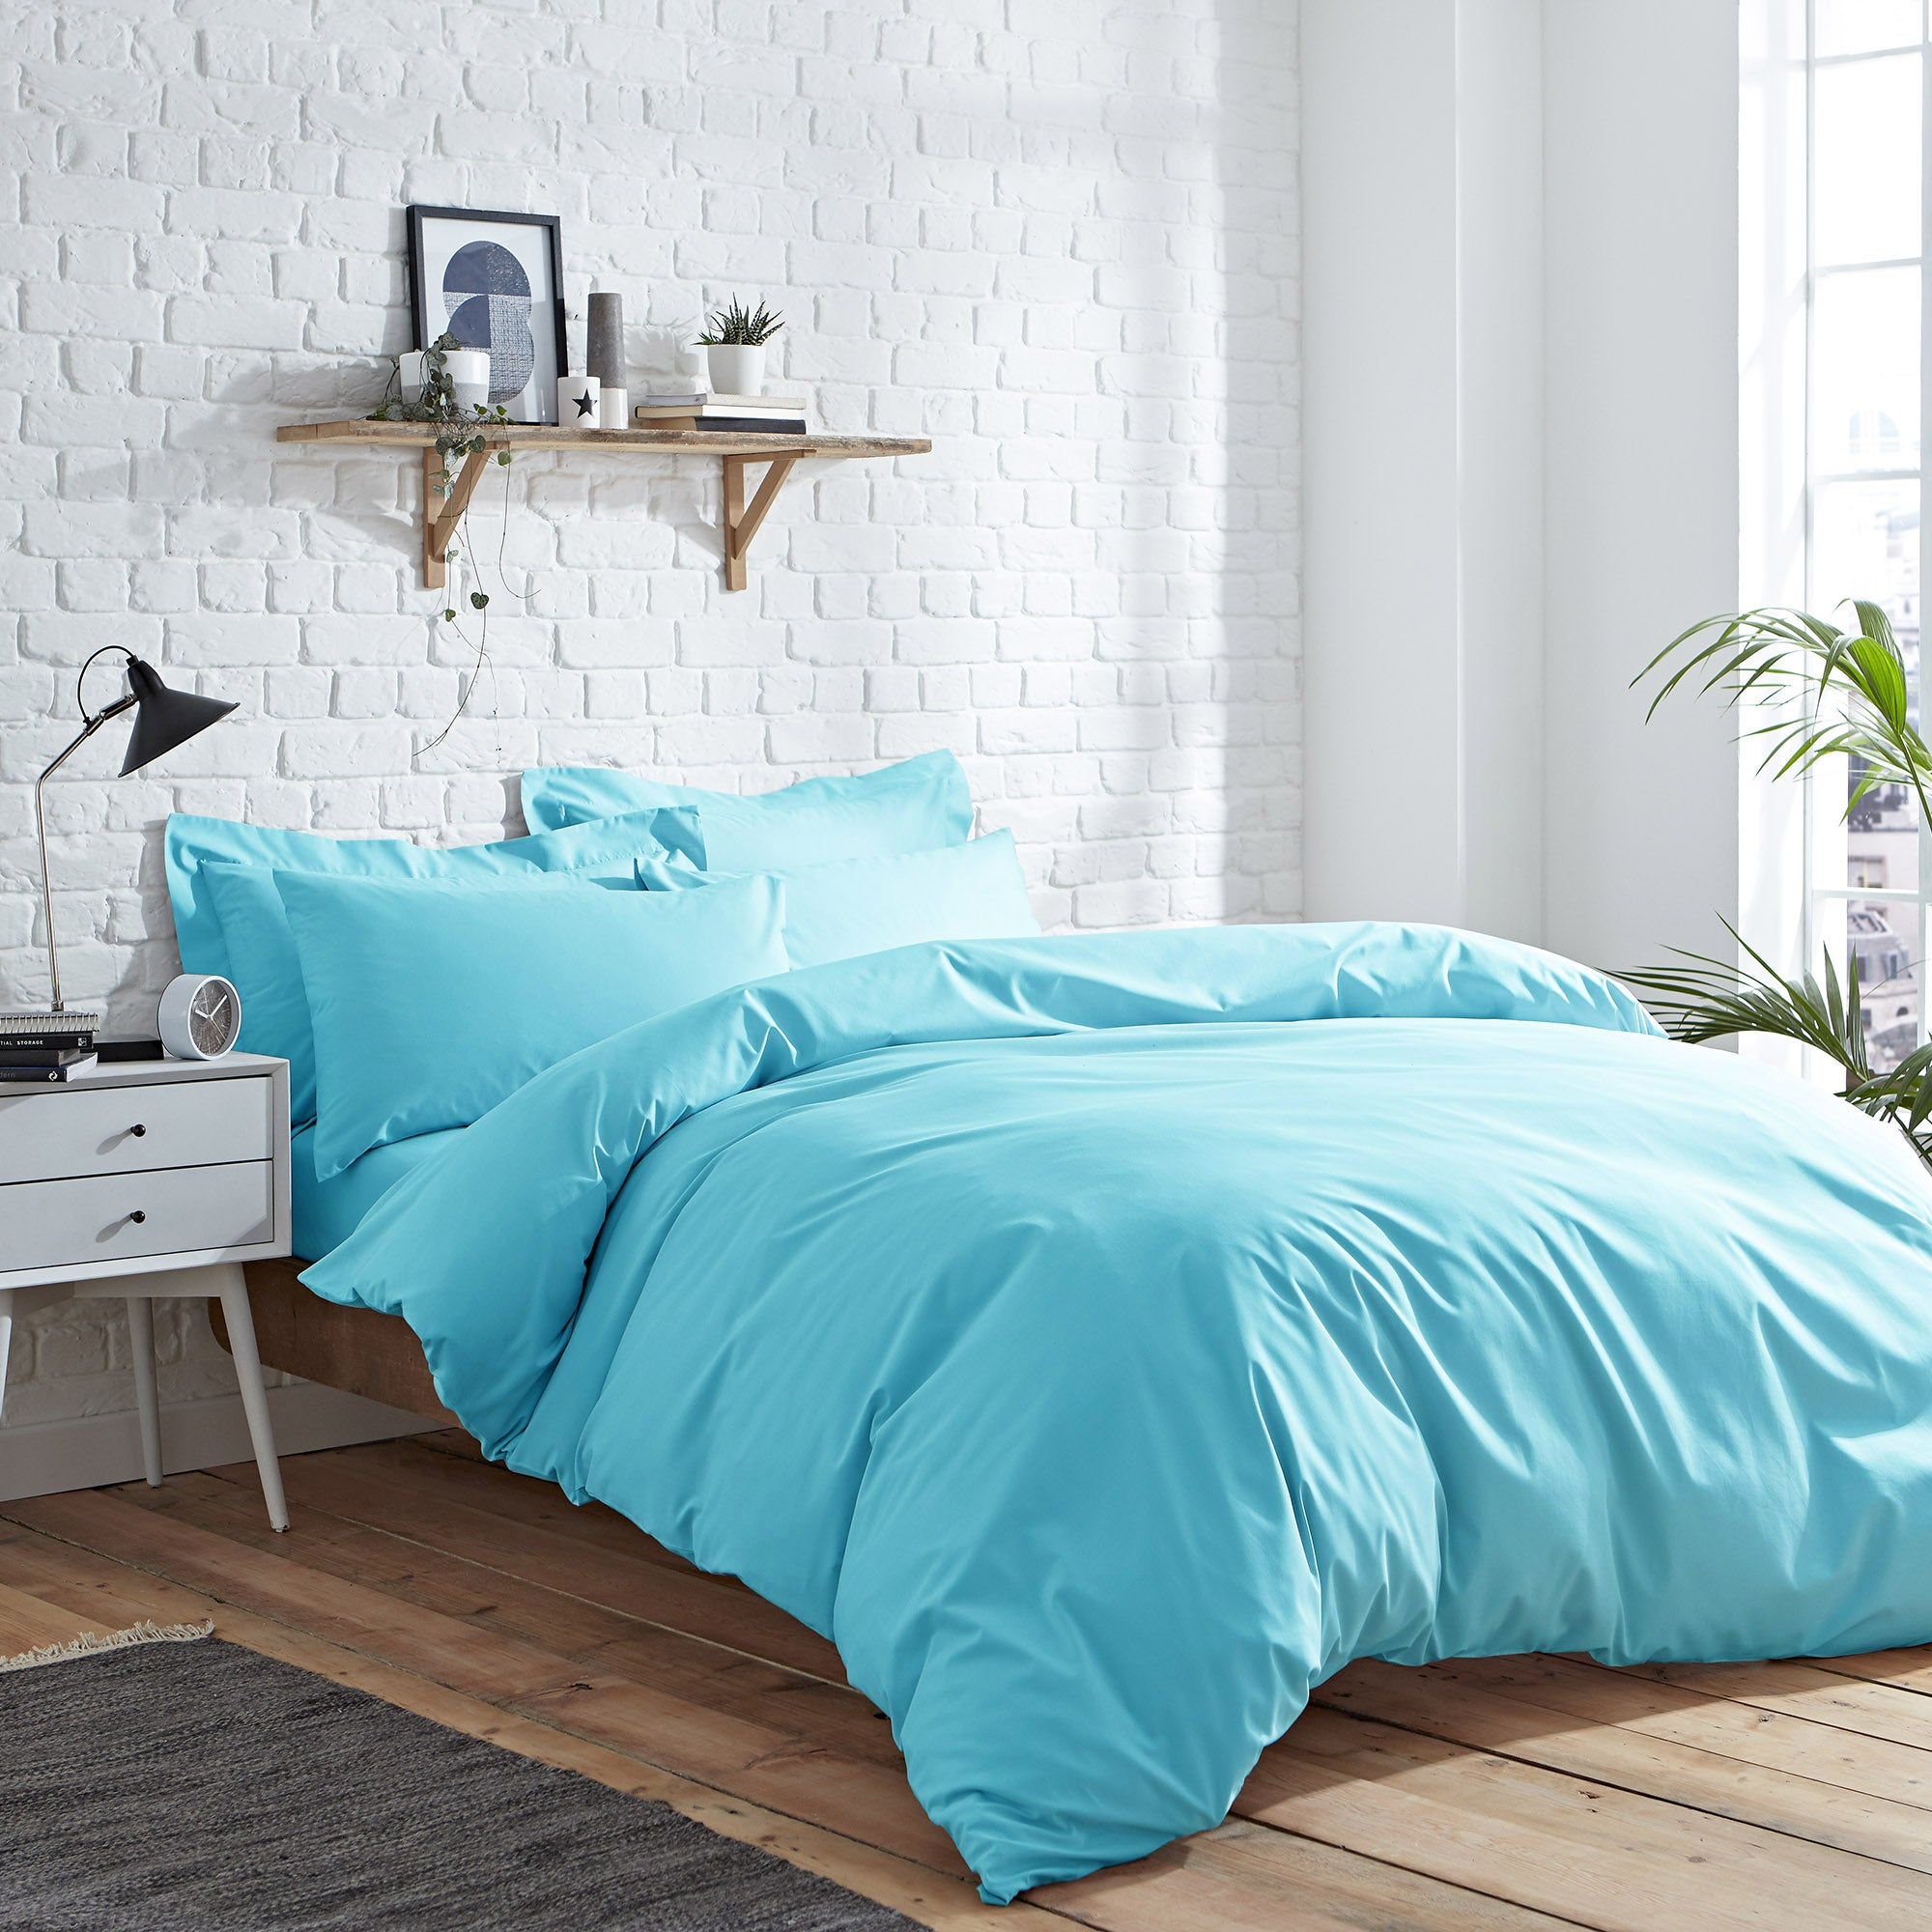 Elements Easycare Blue Bed Linen Collection